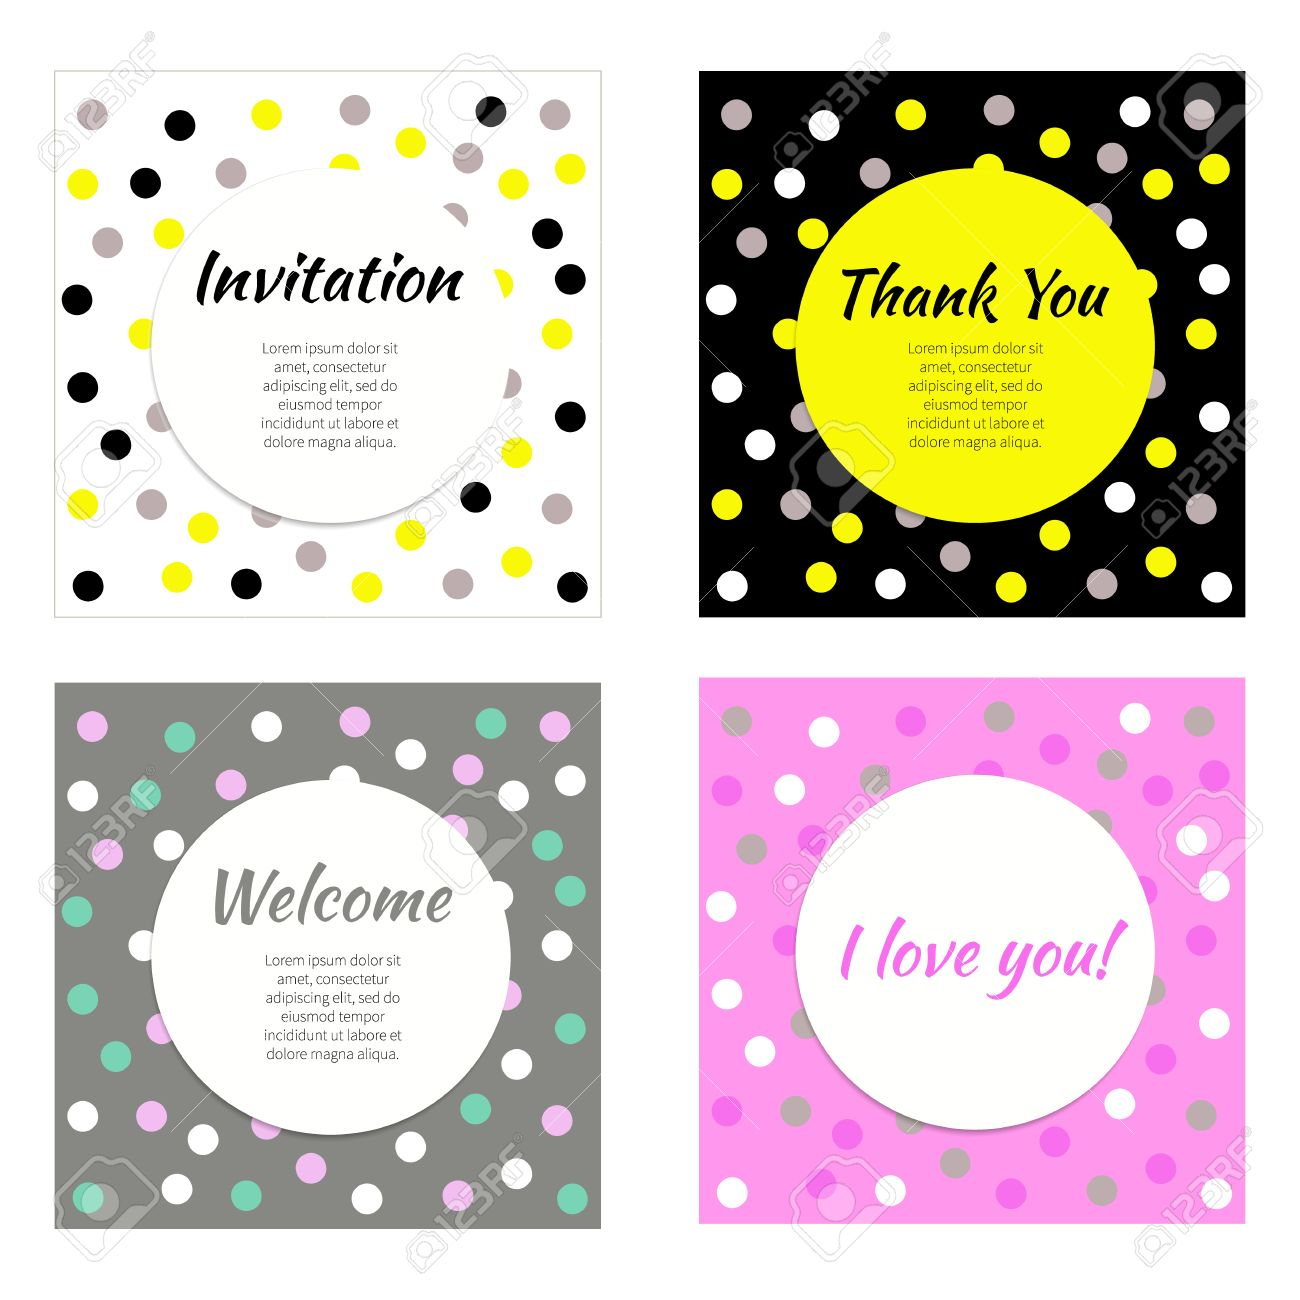 Invitation greeting cards vector set of frames banners postcards invitation greeting cards vector set of frames banners postcards flyers stopboris Images